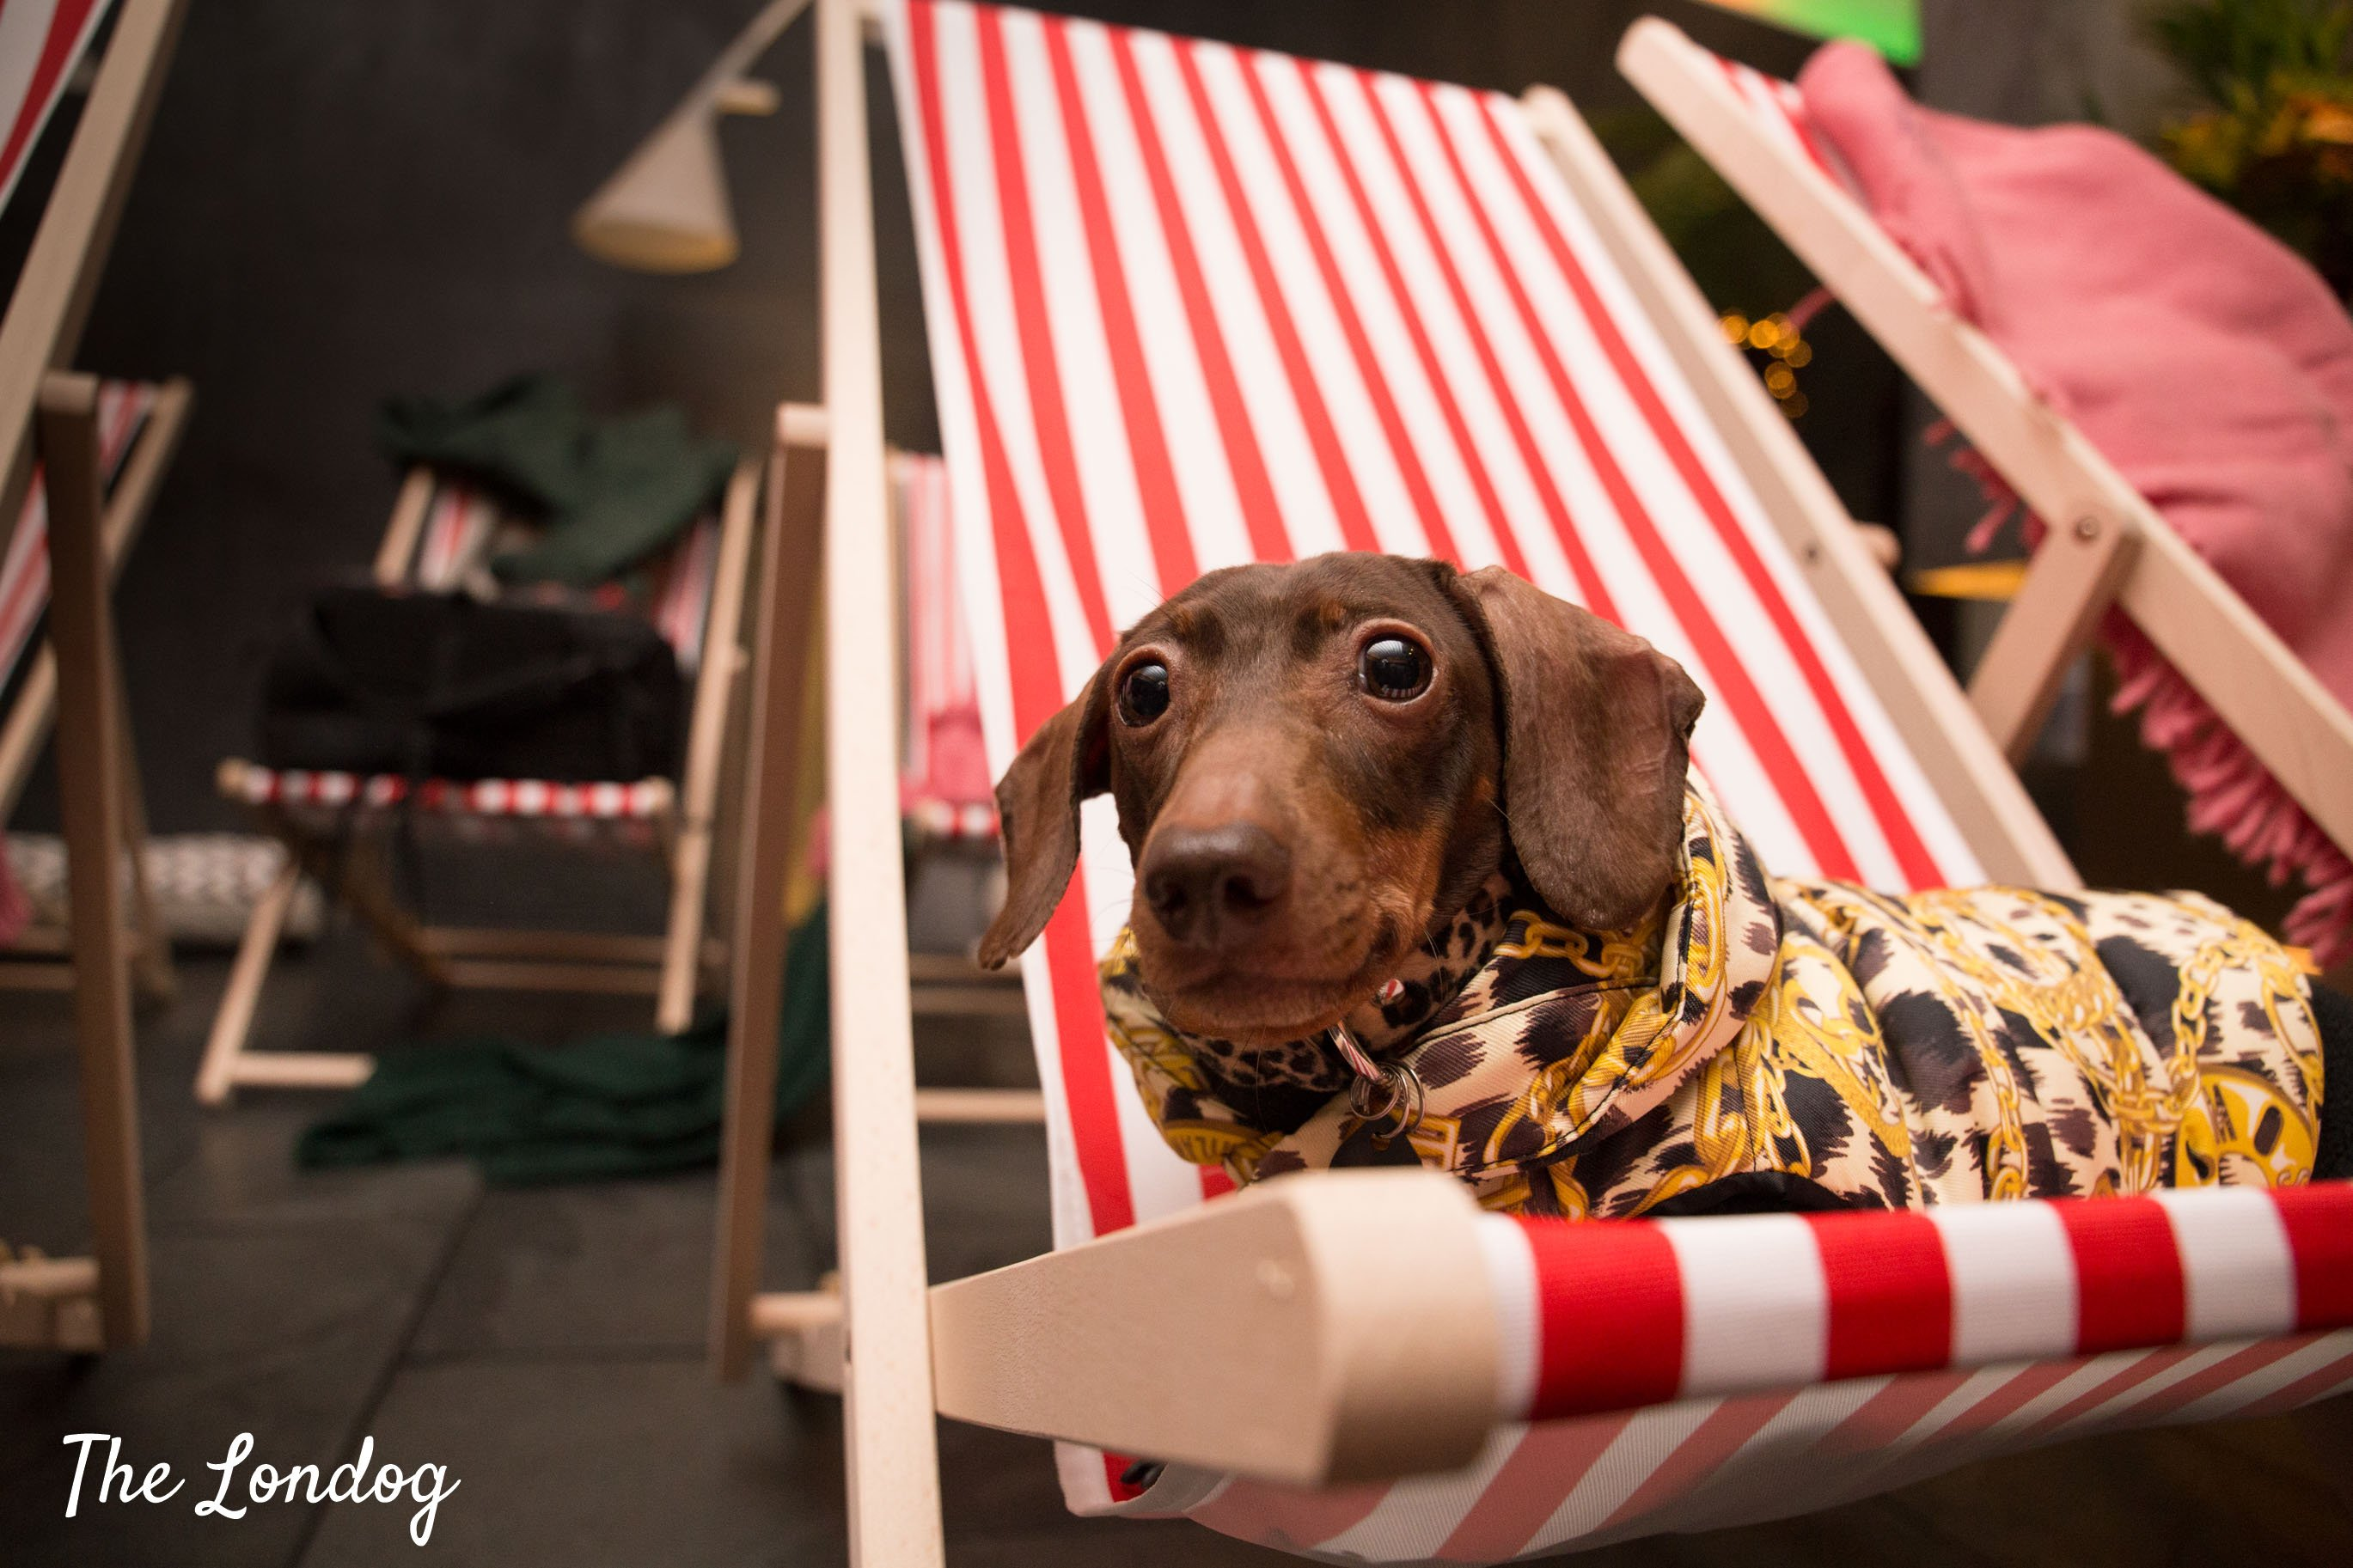 Pop the Sausage dog with a dog coat, on a deckchair red and white